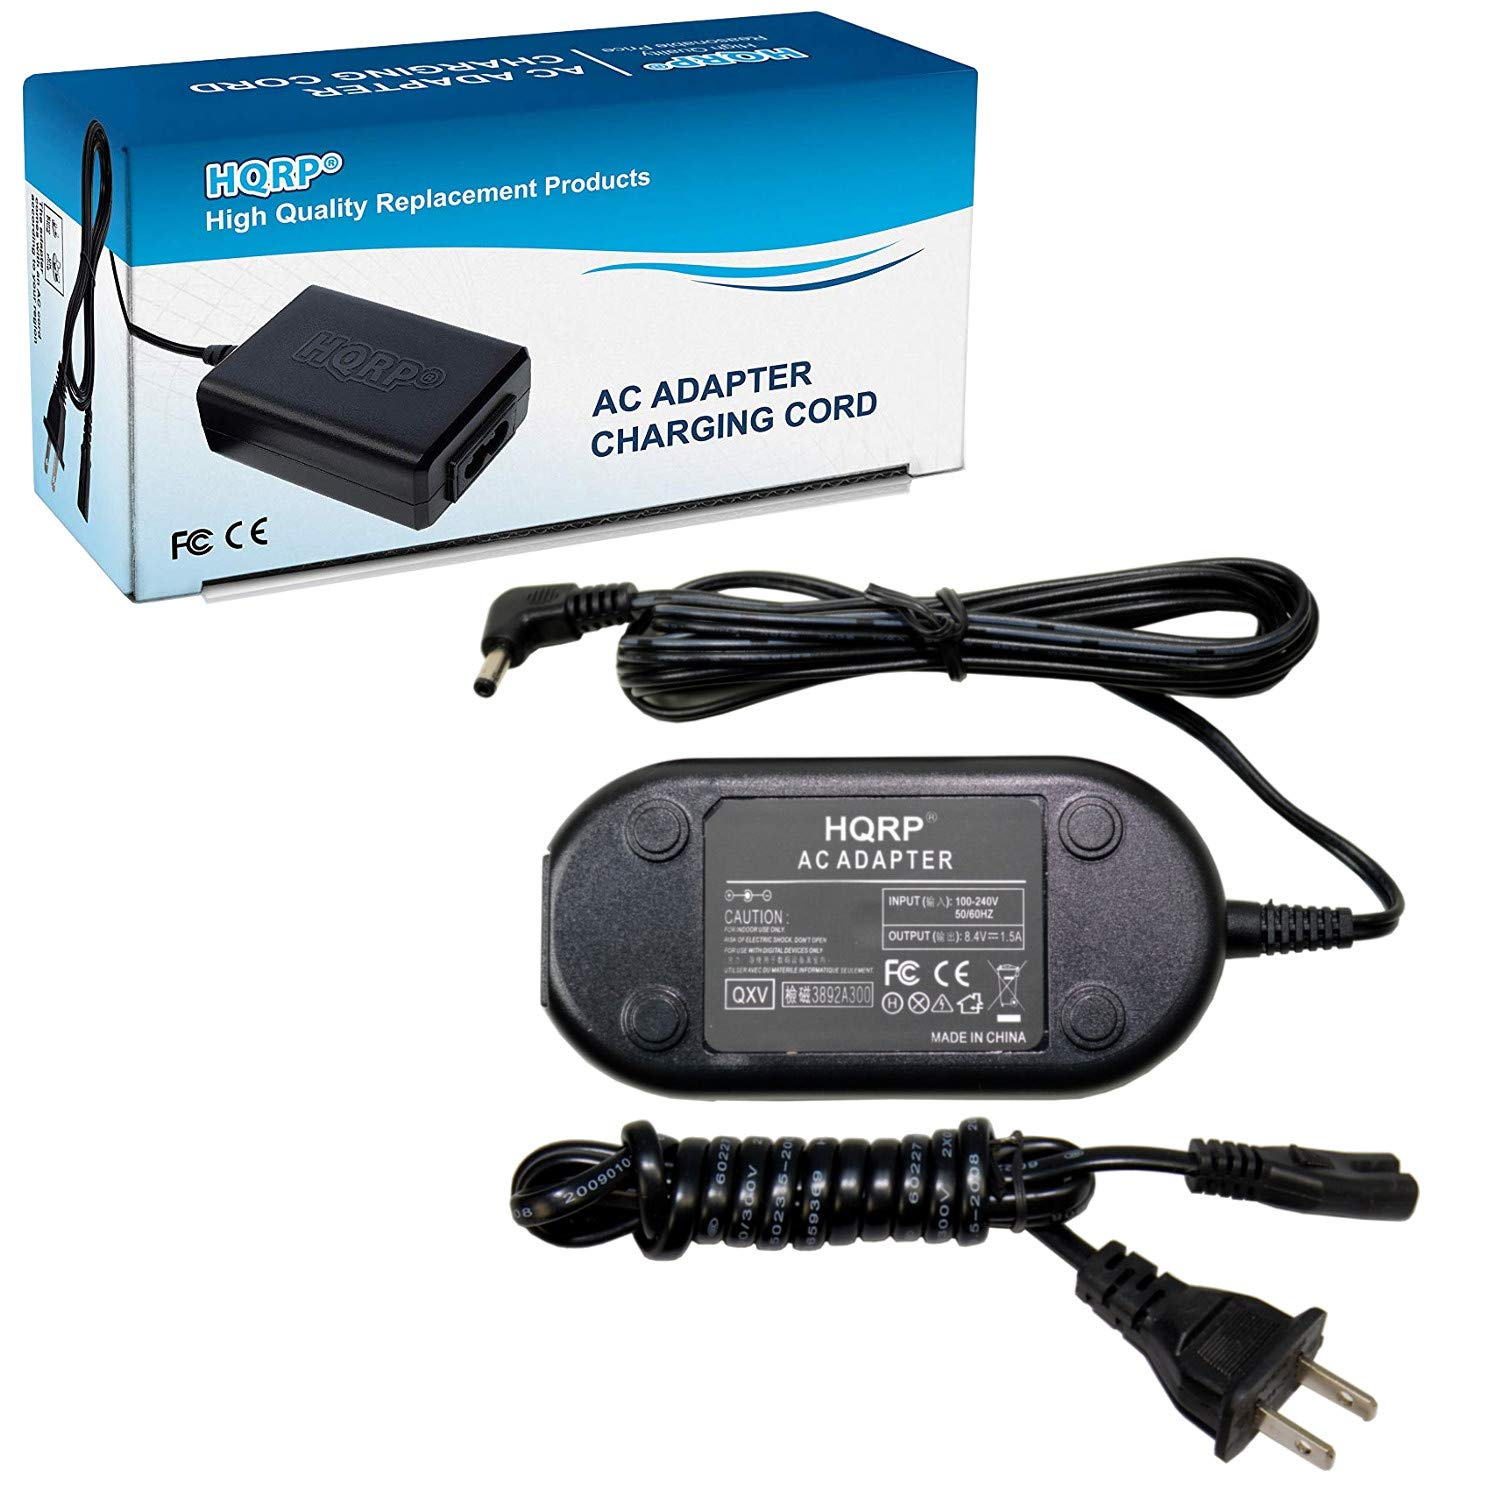 HQRP AC Adapter Charger Compatible with Canon CA-570 VIXIA HF G10 HF G20 HF G30 HF S11 HF S20 HF S30 HF S200 HF S21 VIXIA HF M32 HV20 HV30 HV40 XA10 ZR80 ZR85 ZR90 Camcorder + Euro Plug Adapter by HQRP